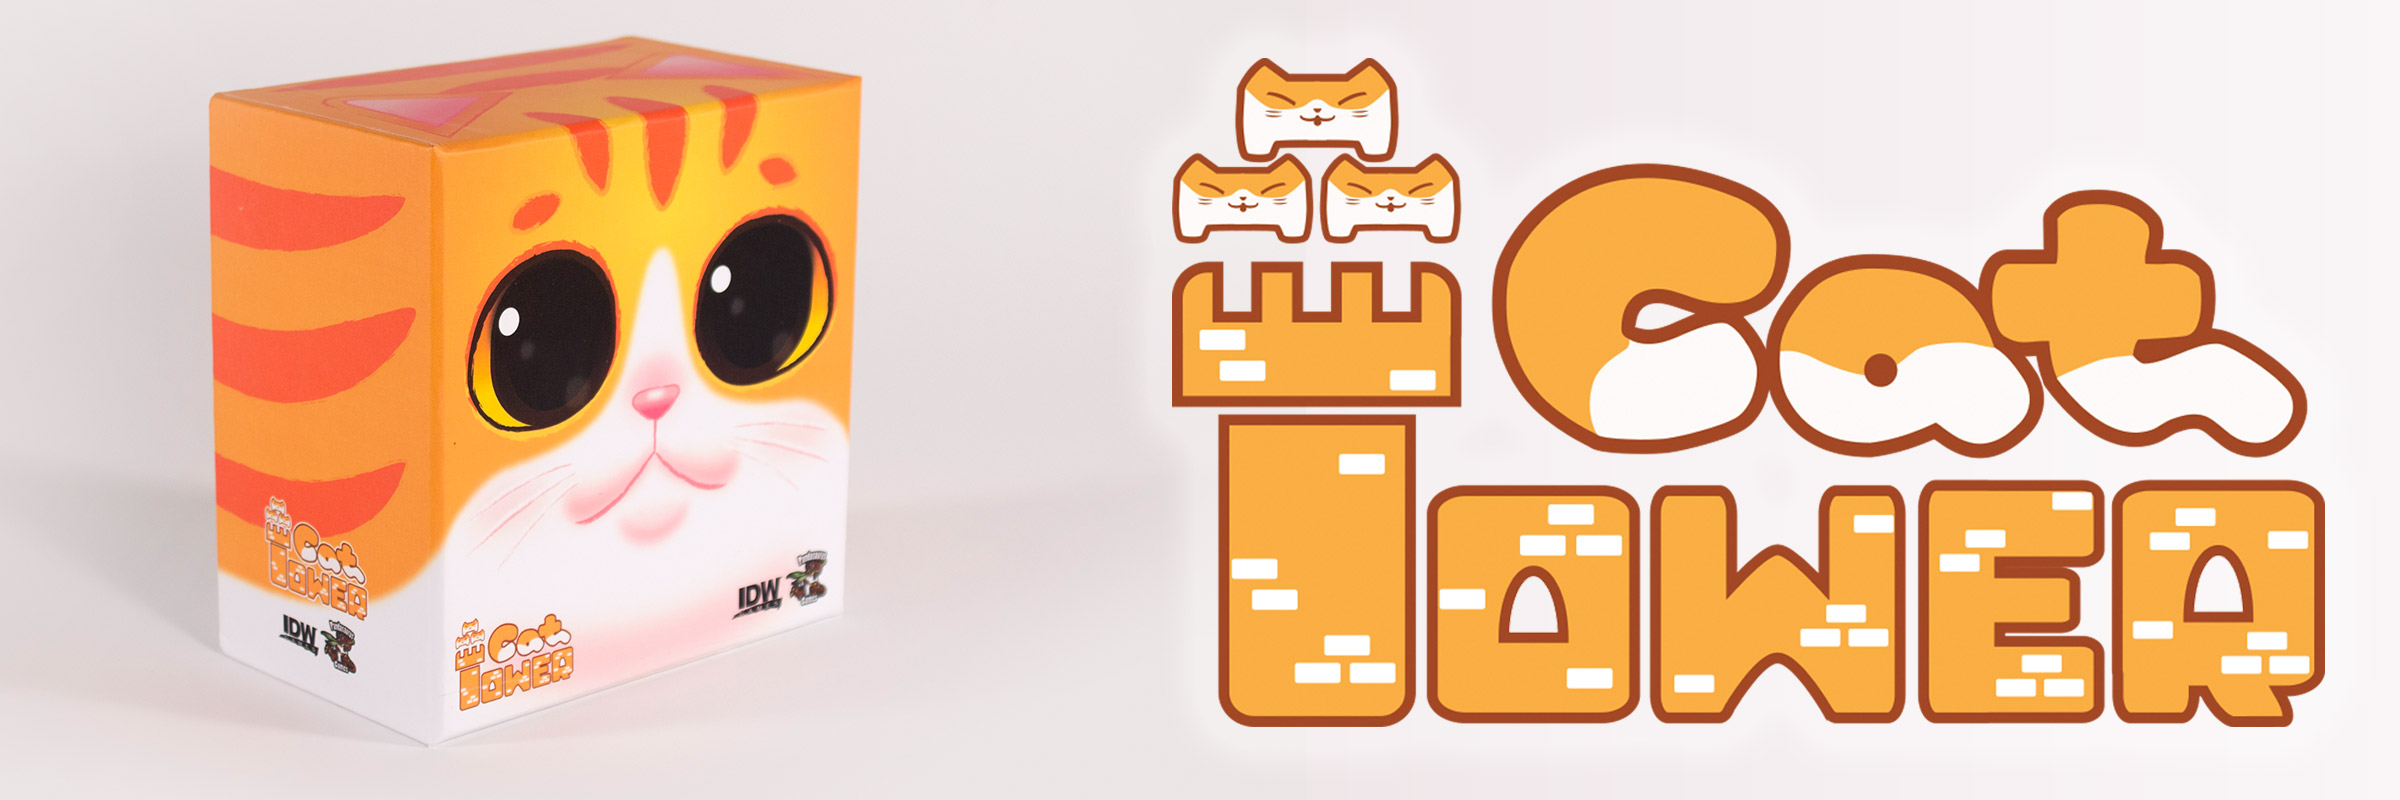 cat-tower-banner-2